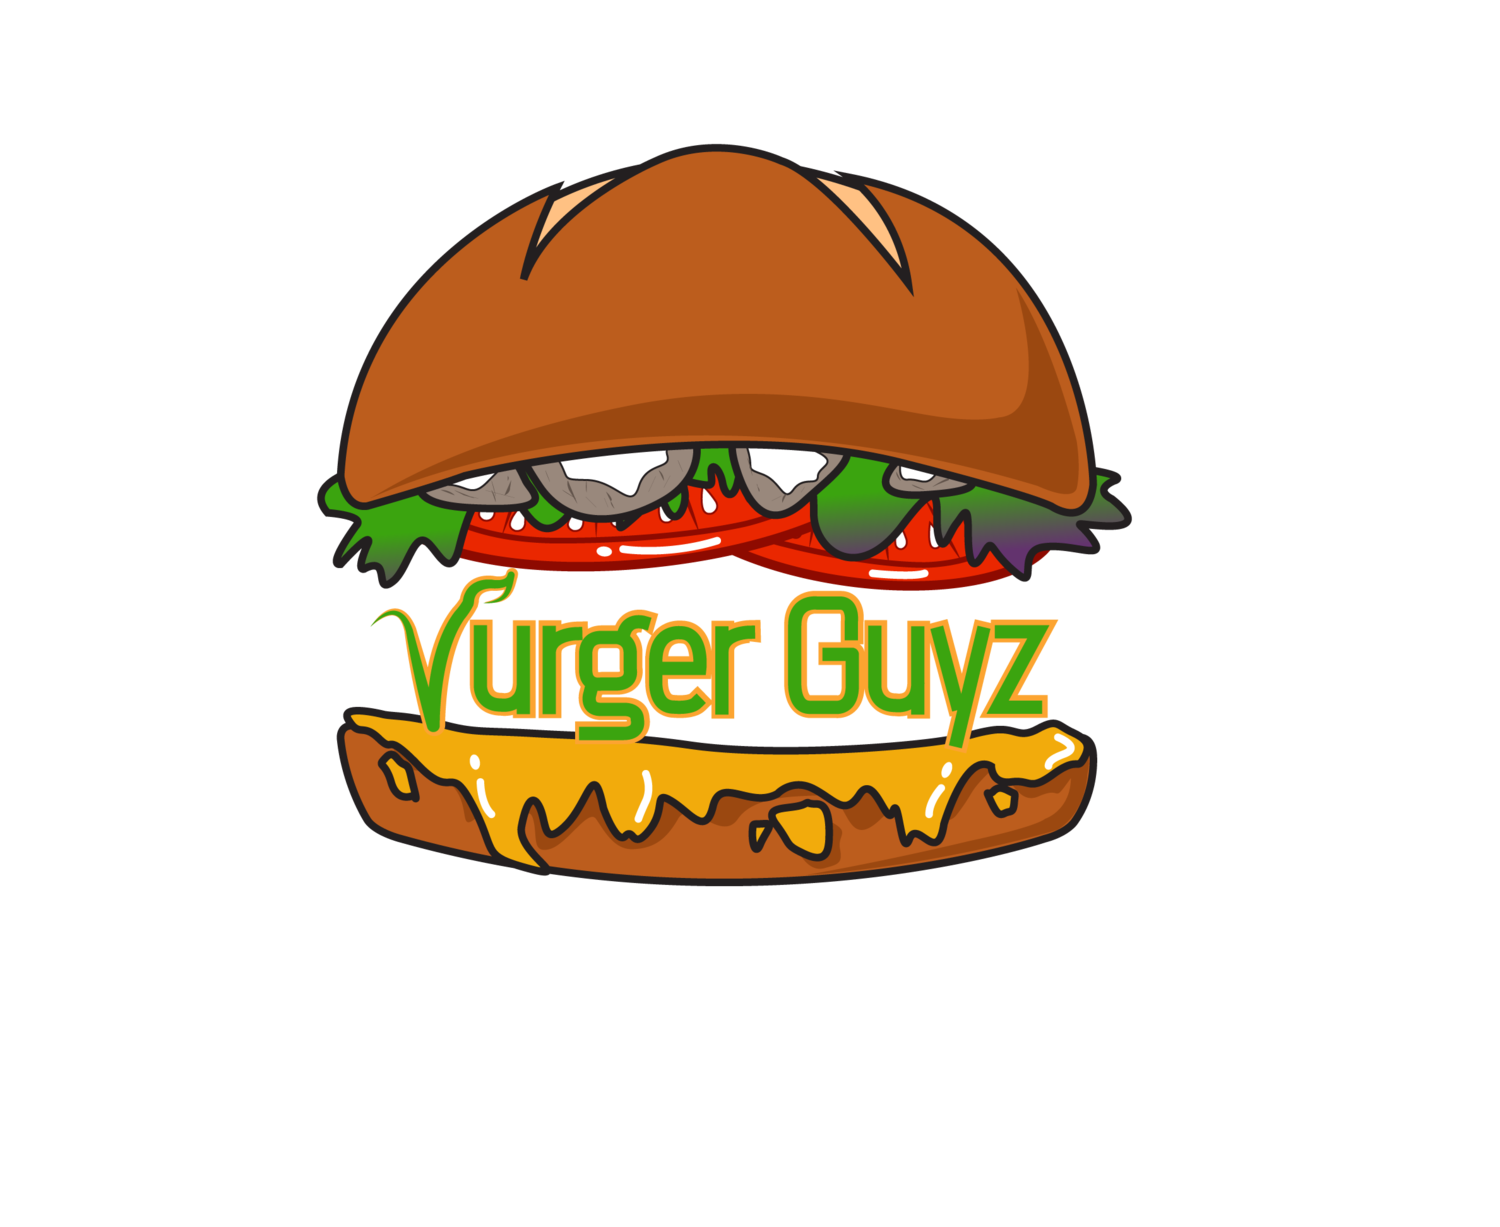 Vurger Guyz | Home Of The Best Vurgers